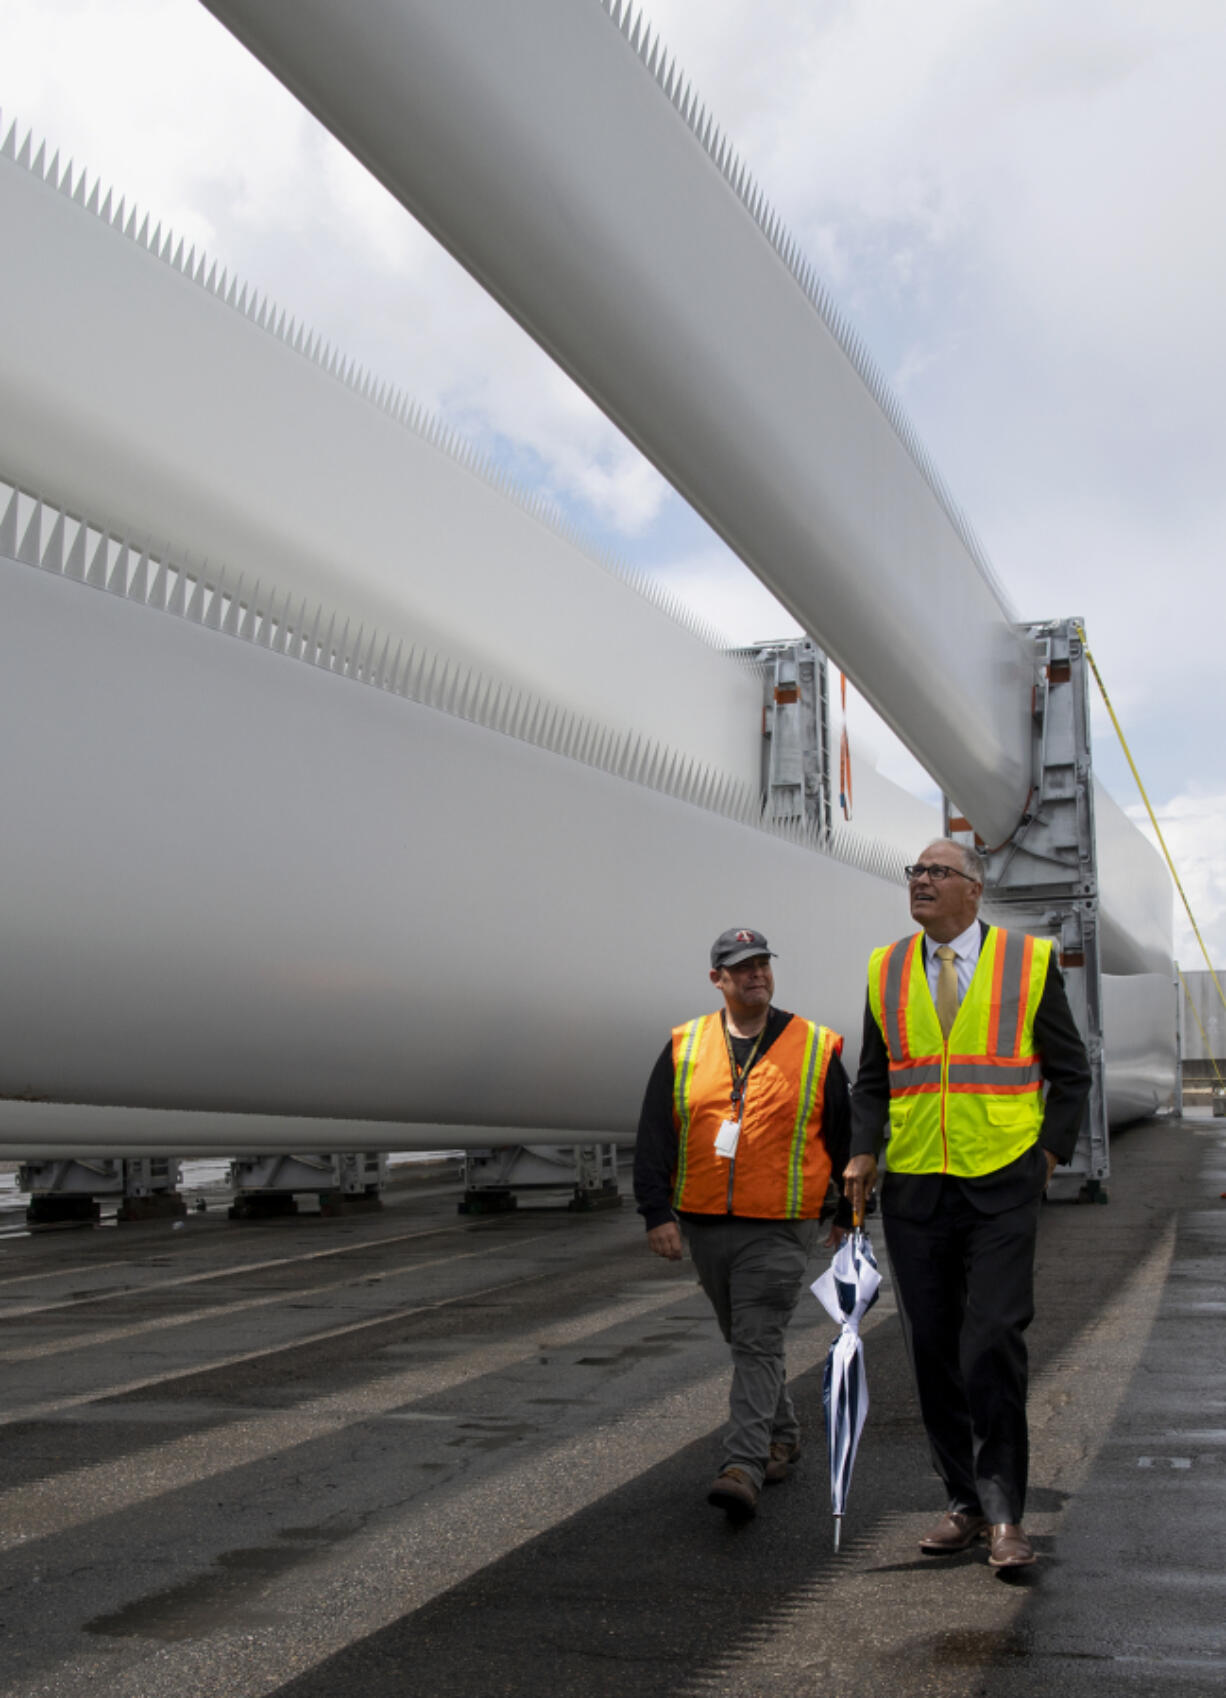 ILWU Local 4 President Cager Clabaugh walks alongside Gov. Jay Inslee as they tour a shipment of wind turbine blades at the Port of Vancouver on Tuesday.